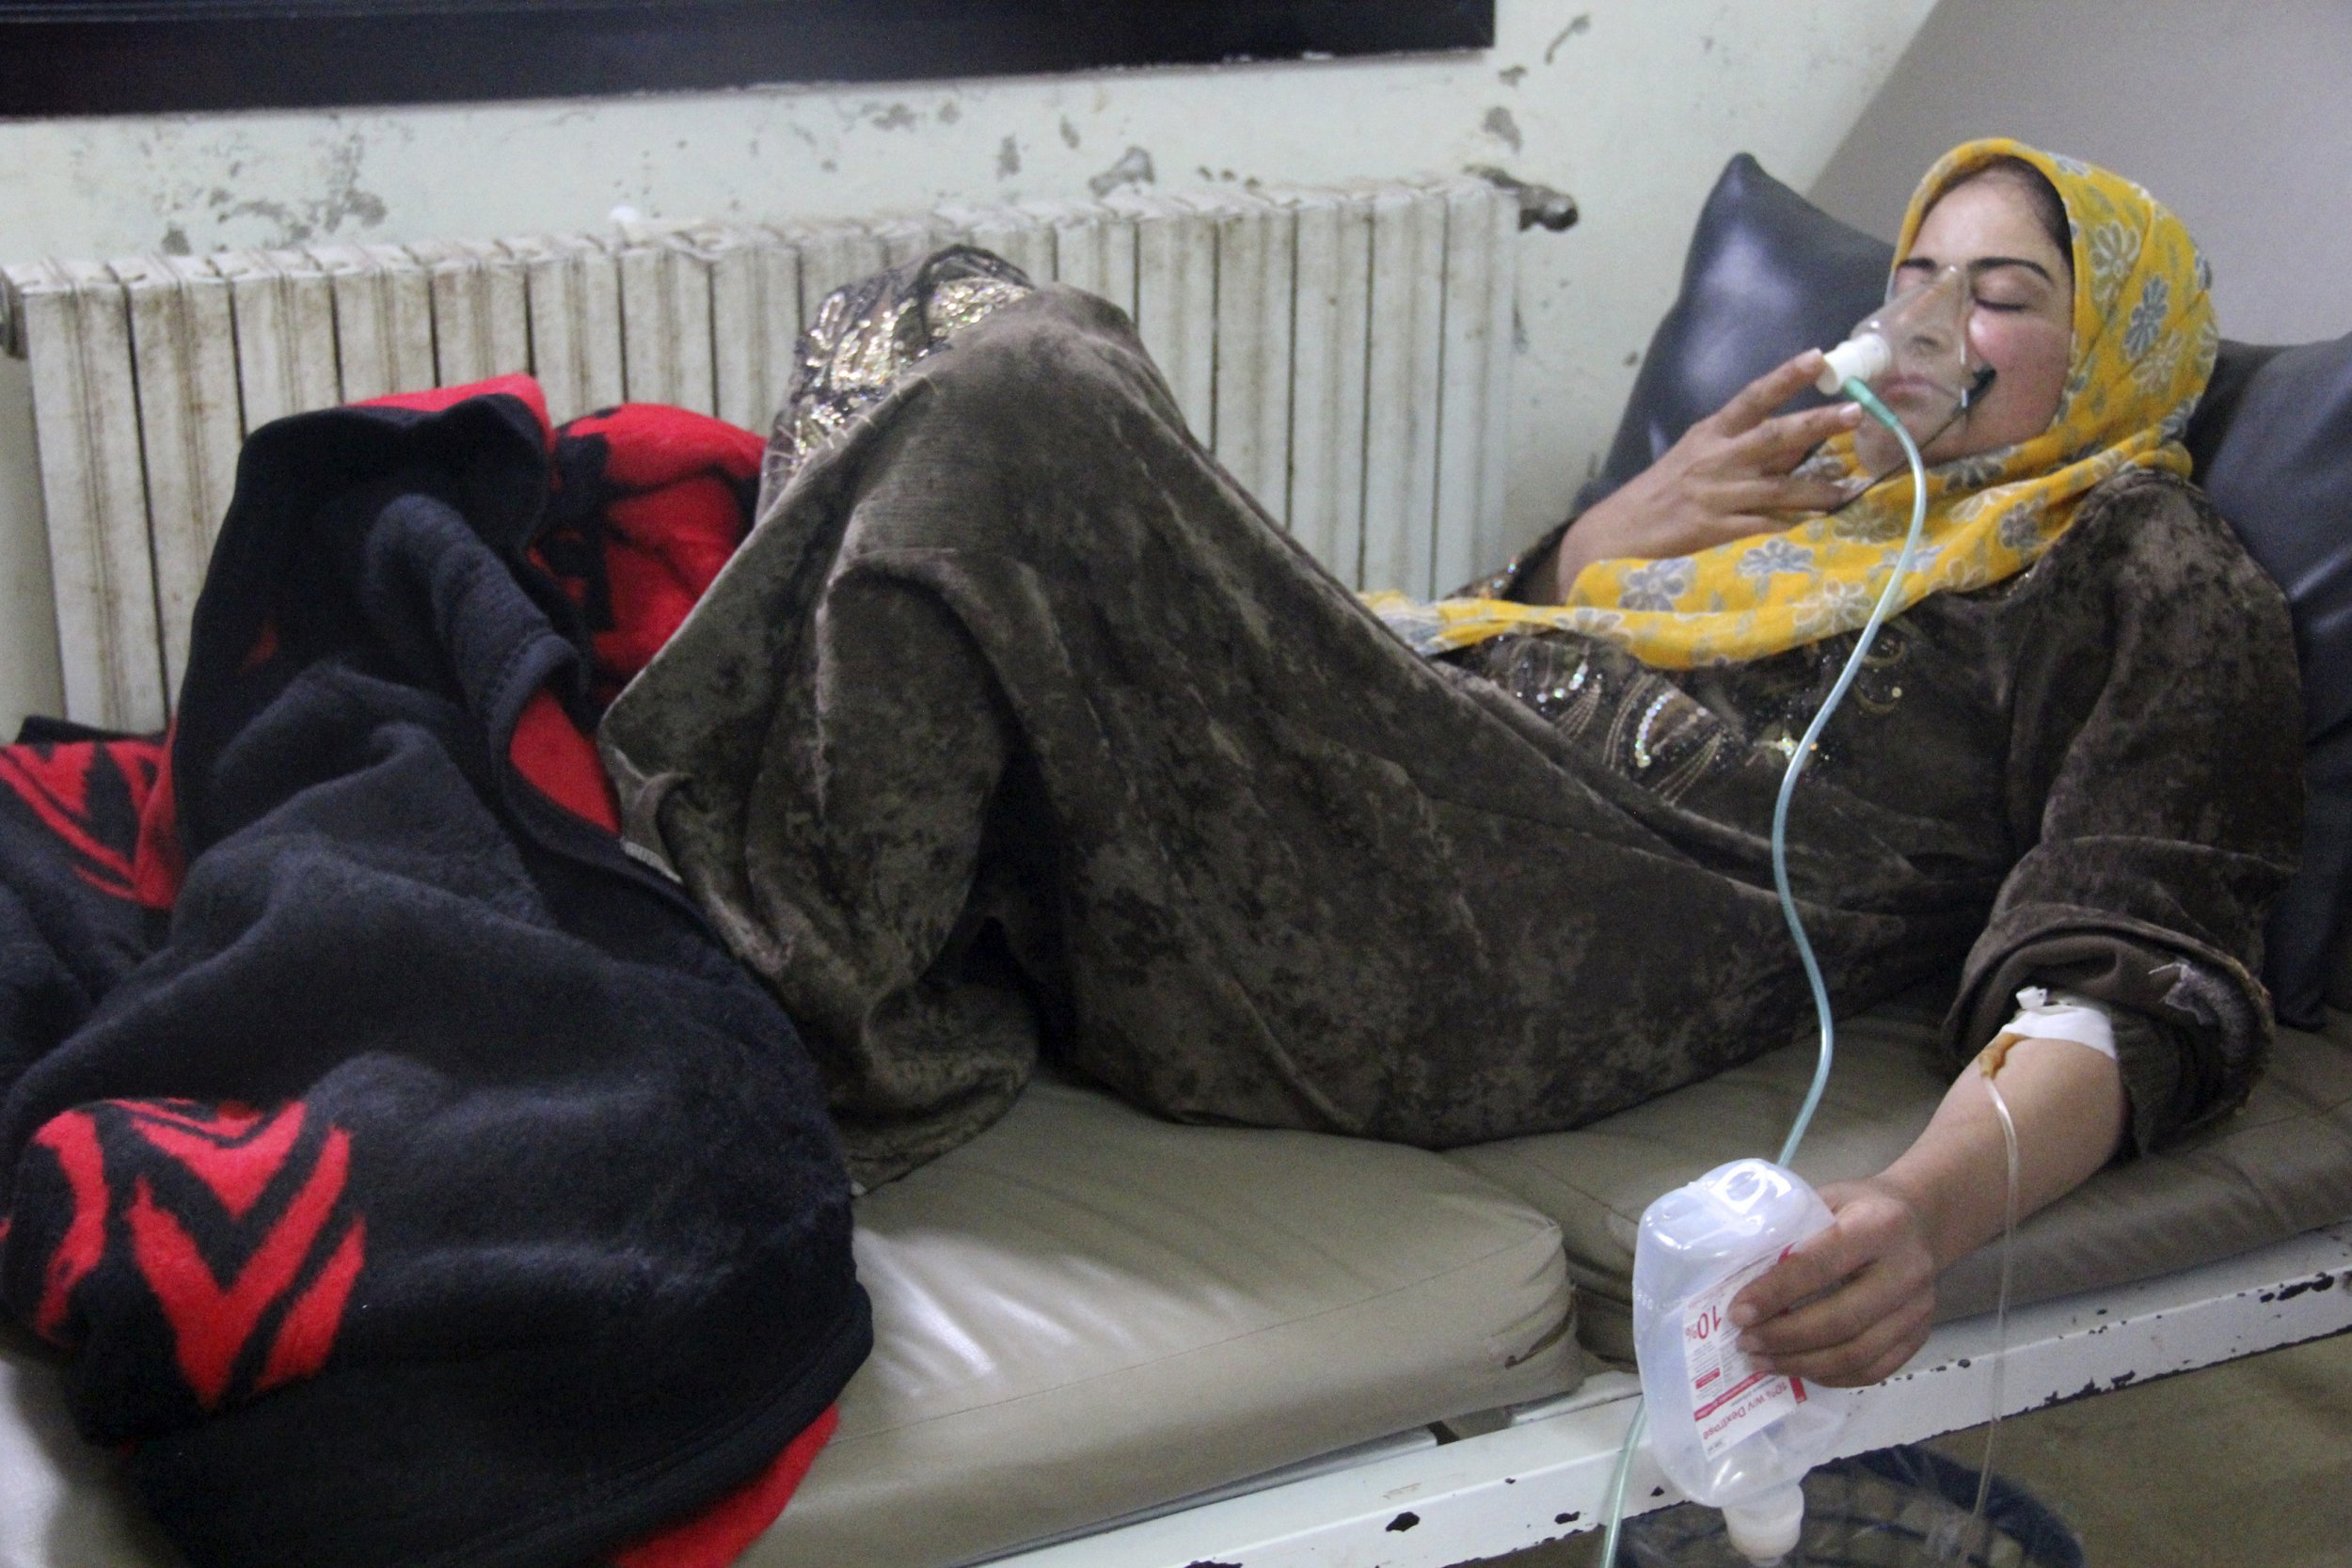 Syrian gas attack victim